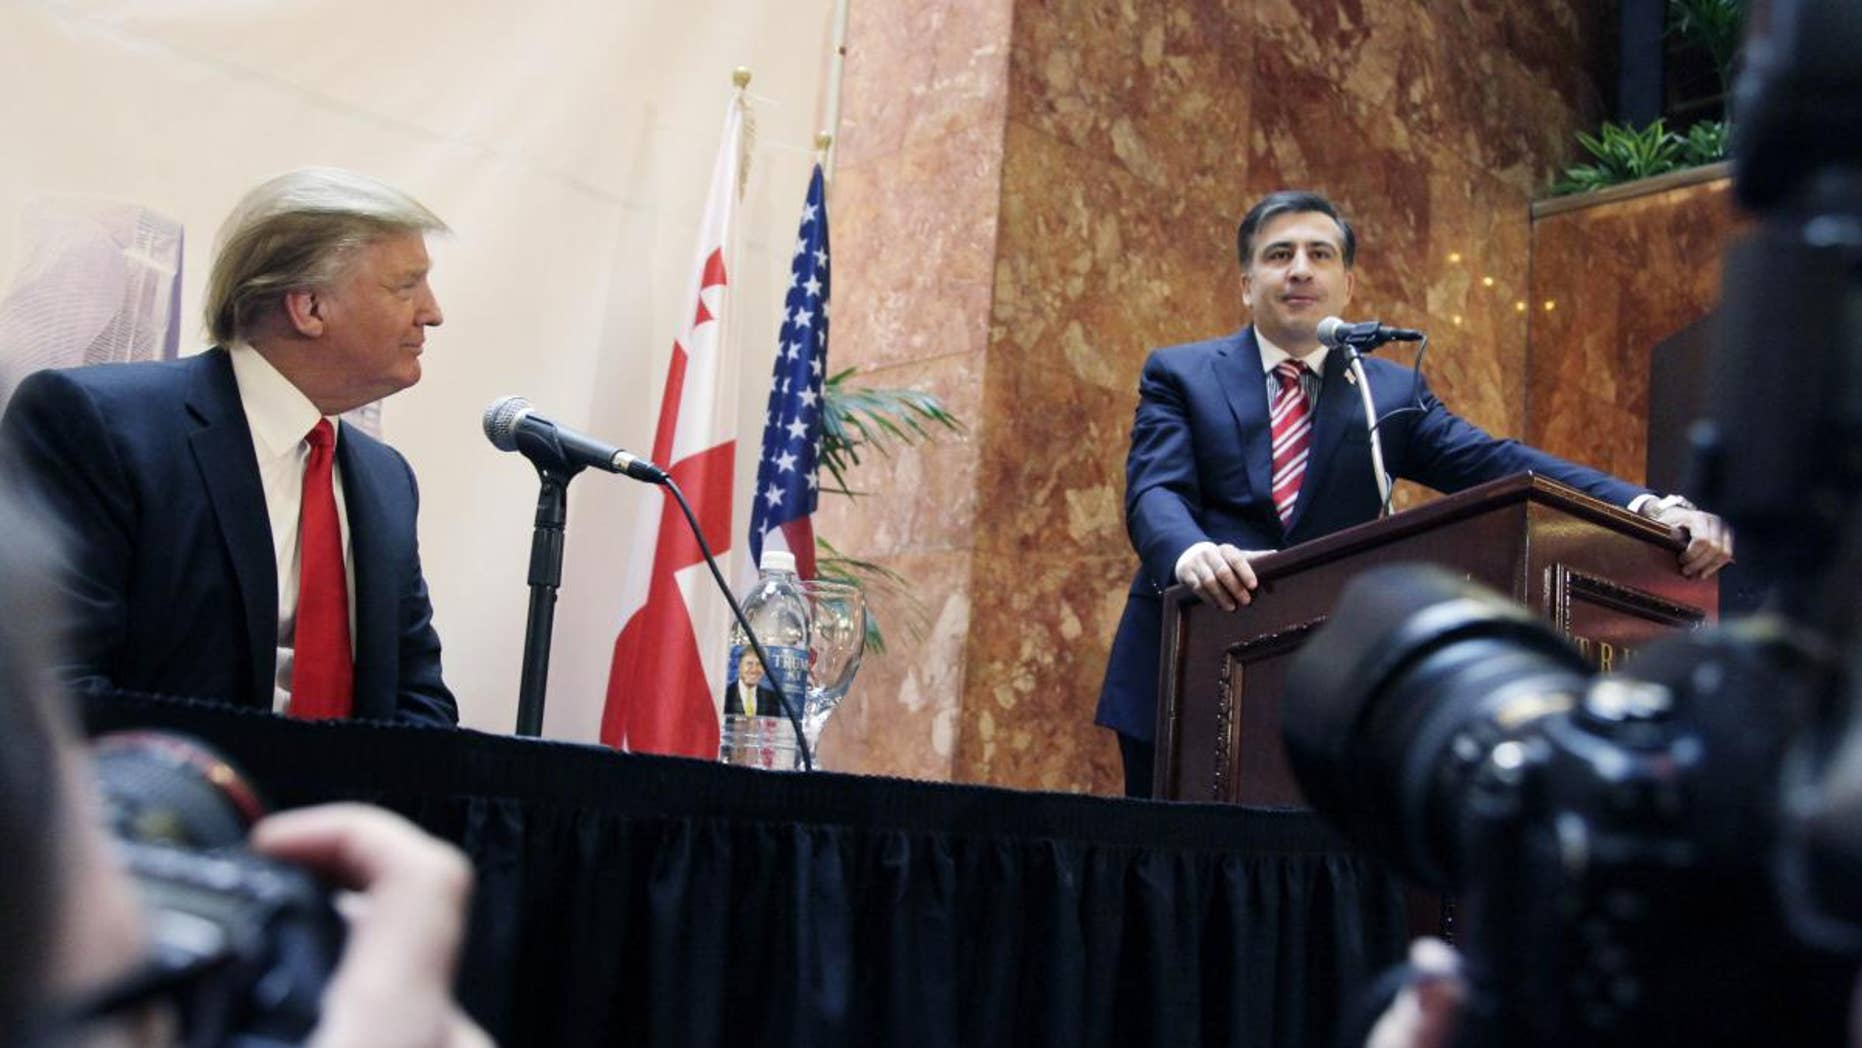 Real estate developer Donald Trump, left, listens to Mikhail Saakashvili, President of Georgia, at a news conference in New York, Thursday, March 10, 2011. Trump and a Georgian development group have agreed to build a Trump Tower in Georgia. Trump indicated he is seriously considering a run for the U.S. presidency. (AP Photo/Mark Lennihan)